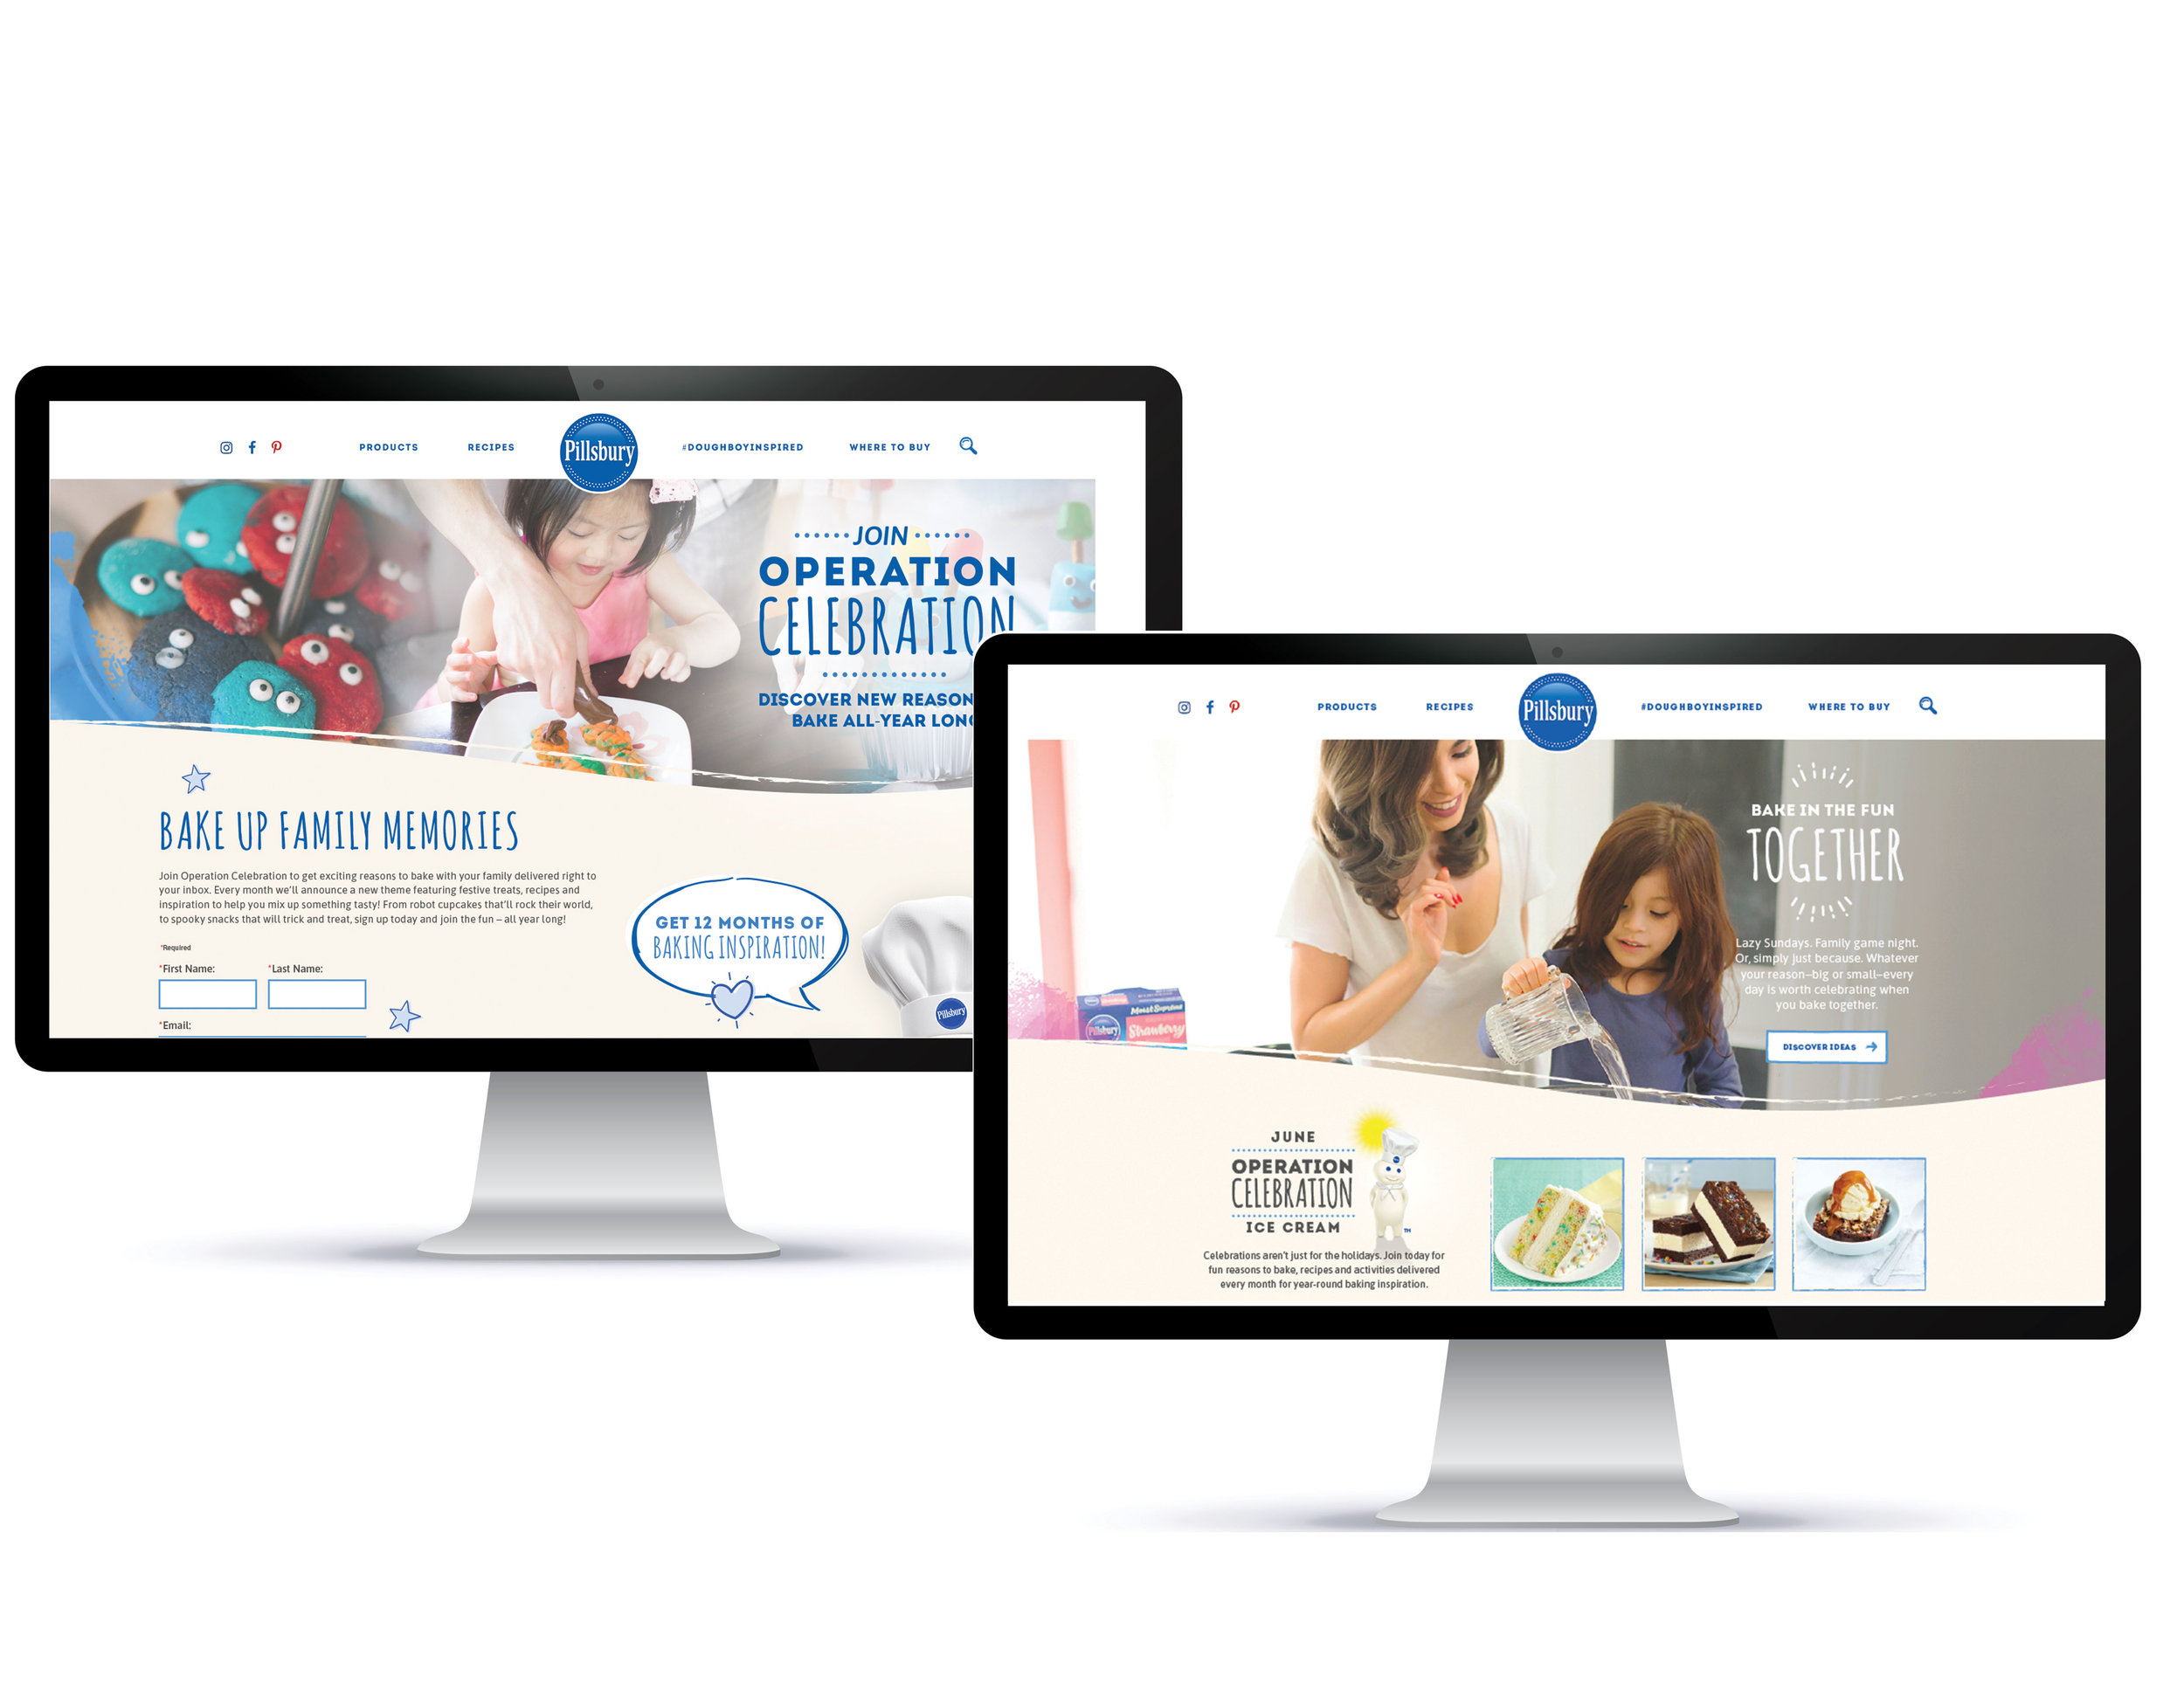 PILLSBURY BAKING WEBSITE |  Every month the Pillsbury Baking site is updated to feature the month's theme with relevant articles, listacles and recipe content of the featured theme while other media drivers drive users to sign-up for additional content inspiration.